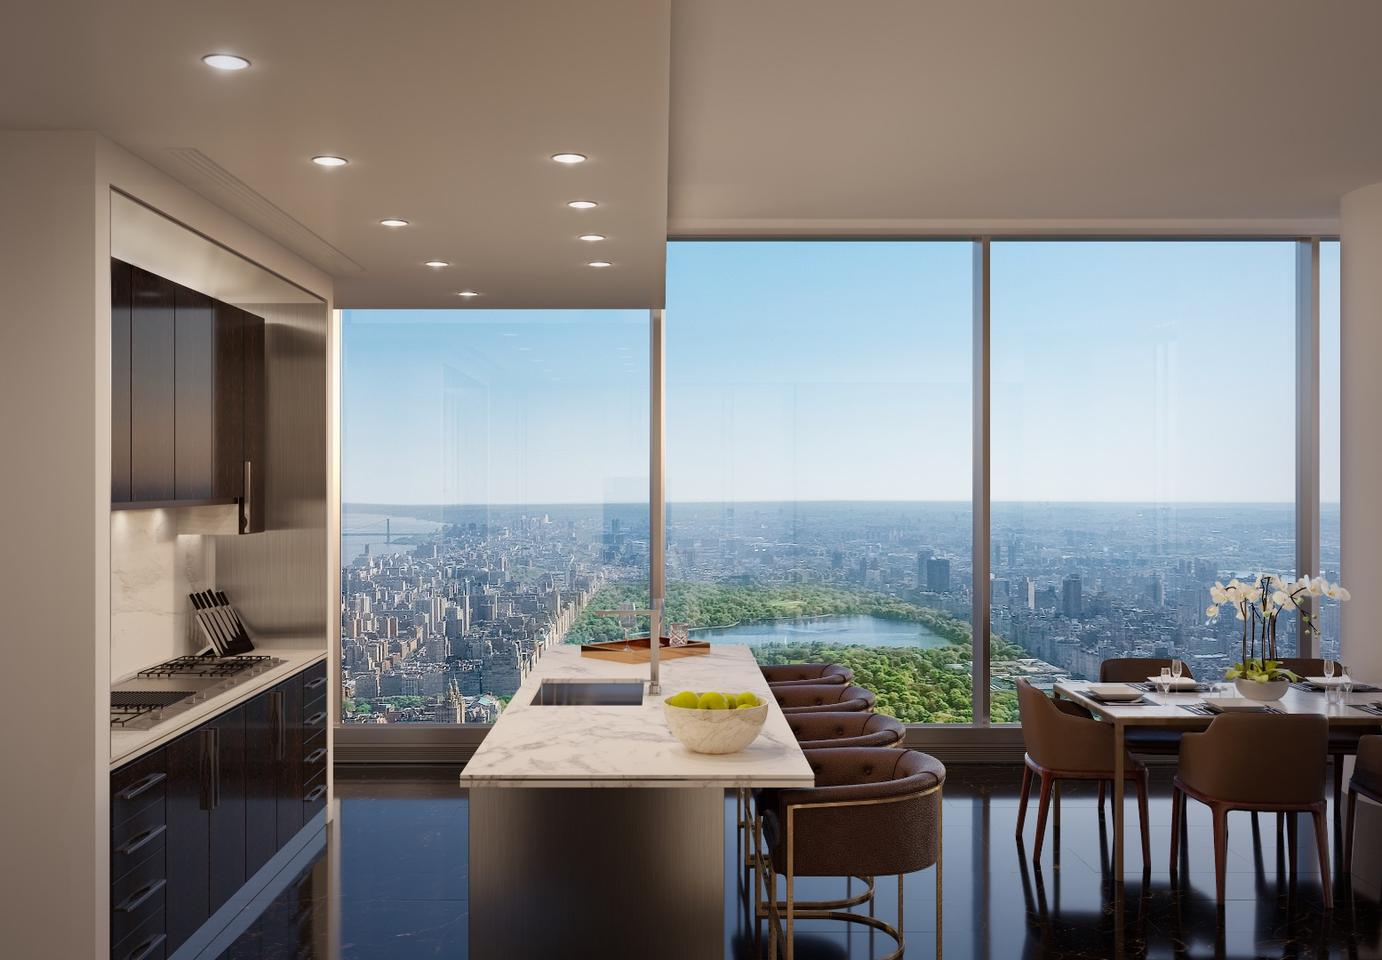 Central Park Tower'sinteriors are designed by Rottet Studio, a firm that has worked onThe Surrey Hotel in Manhattan, The St. Regis in Aspen, The Beverly Hills HotelPresidential Bungalows, and more